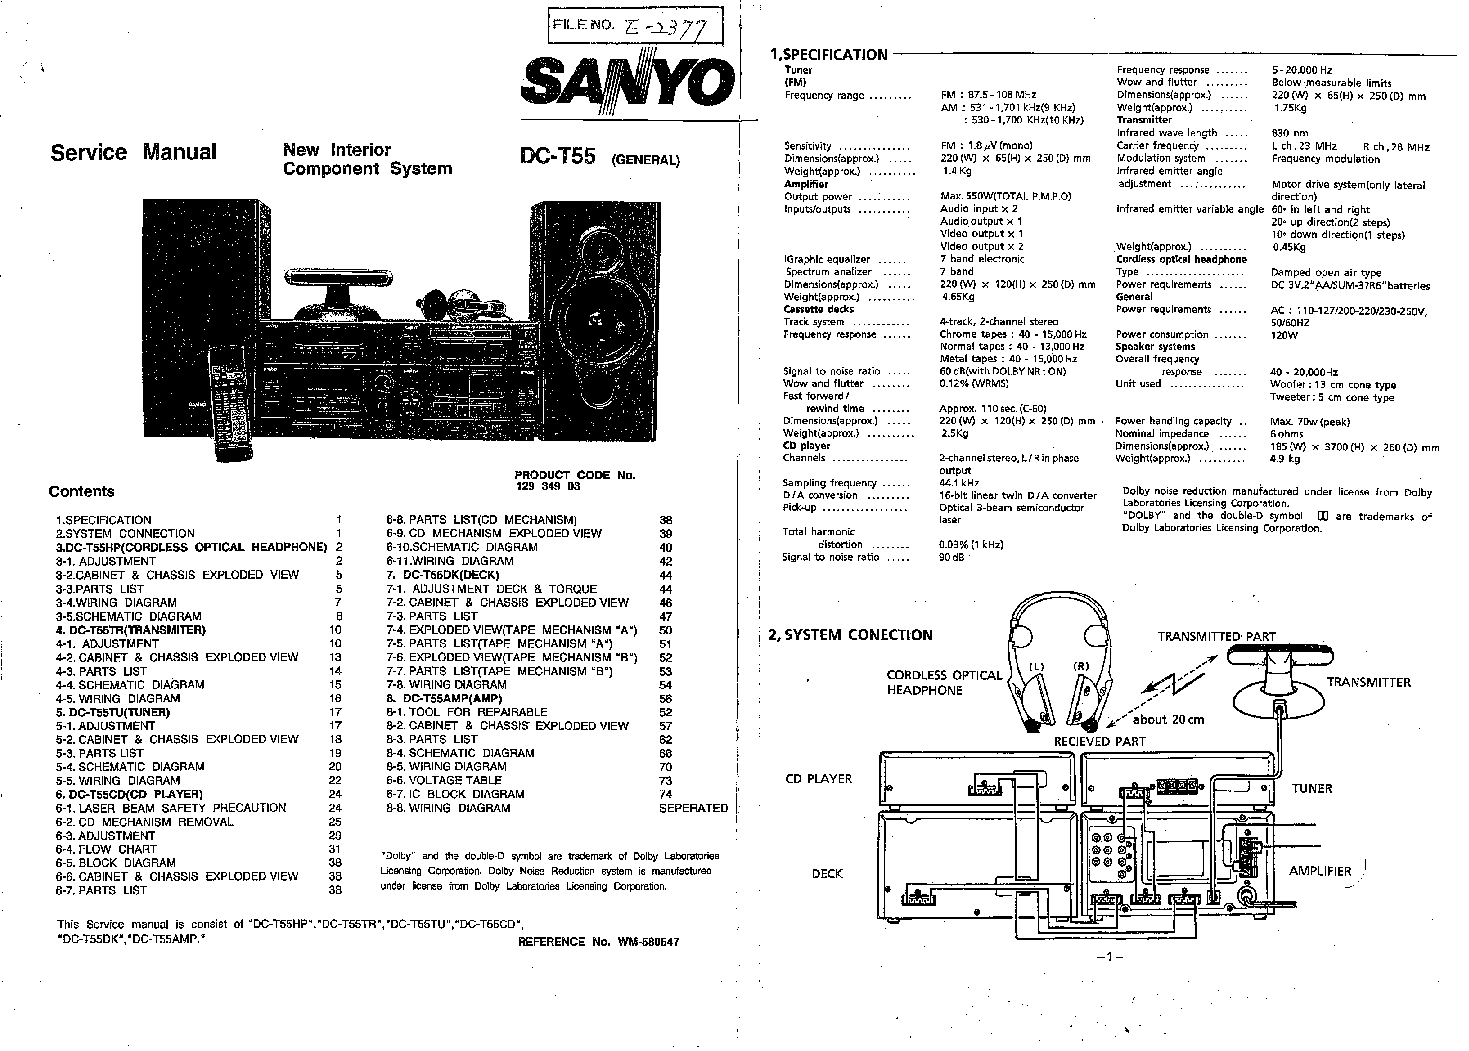 Sanyo Dc T55 Sm Service Manual Download Schematics